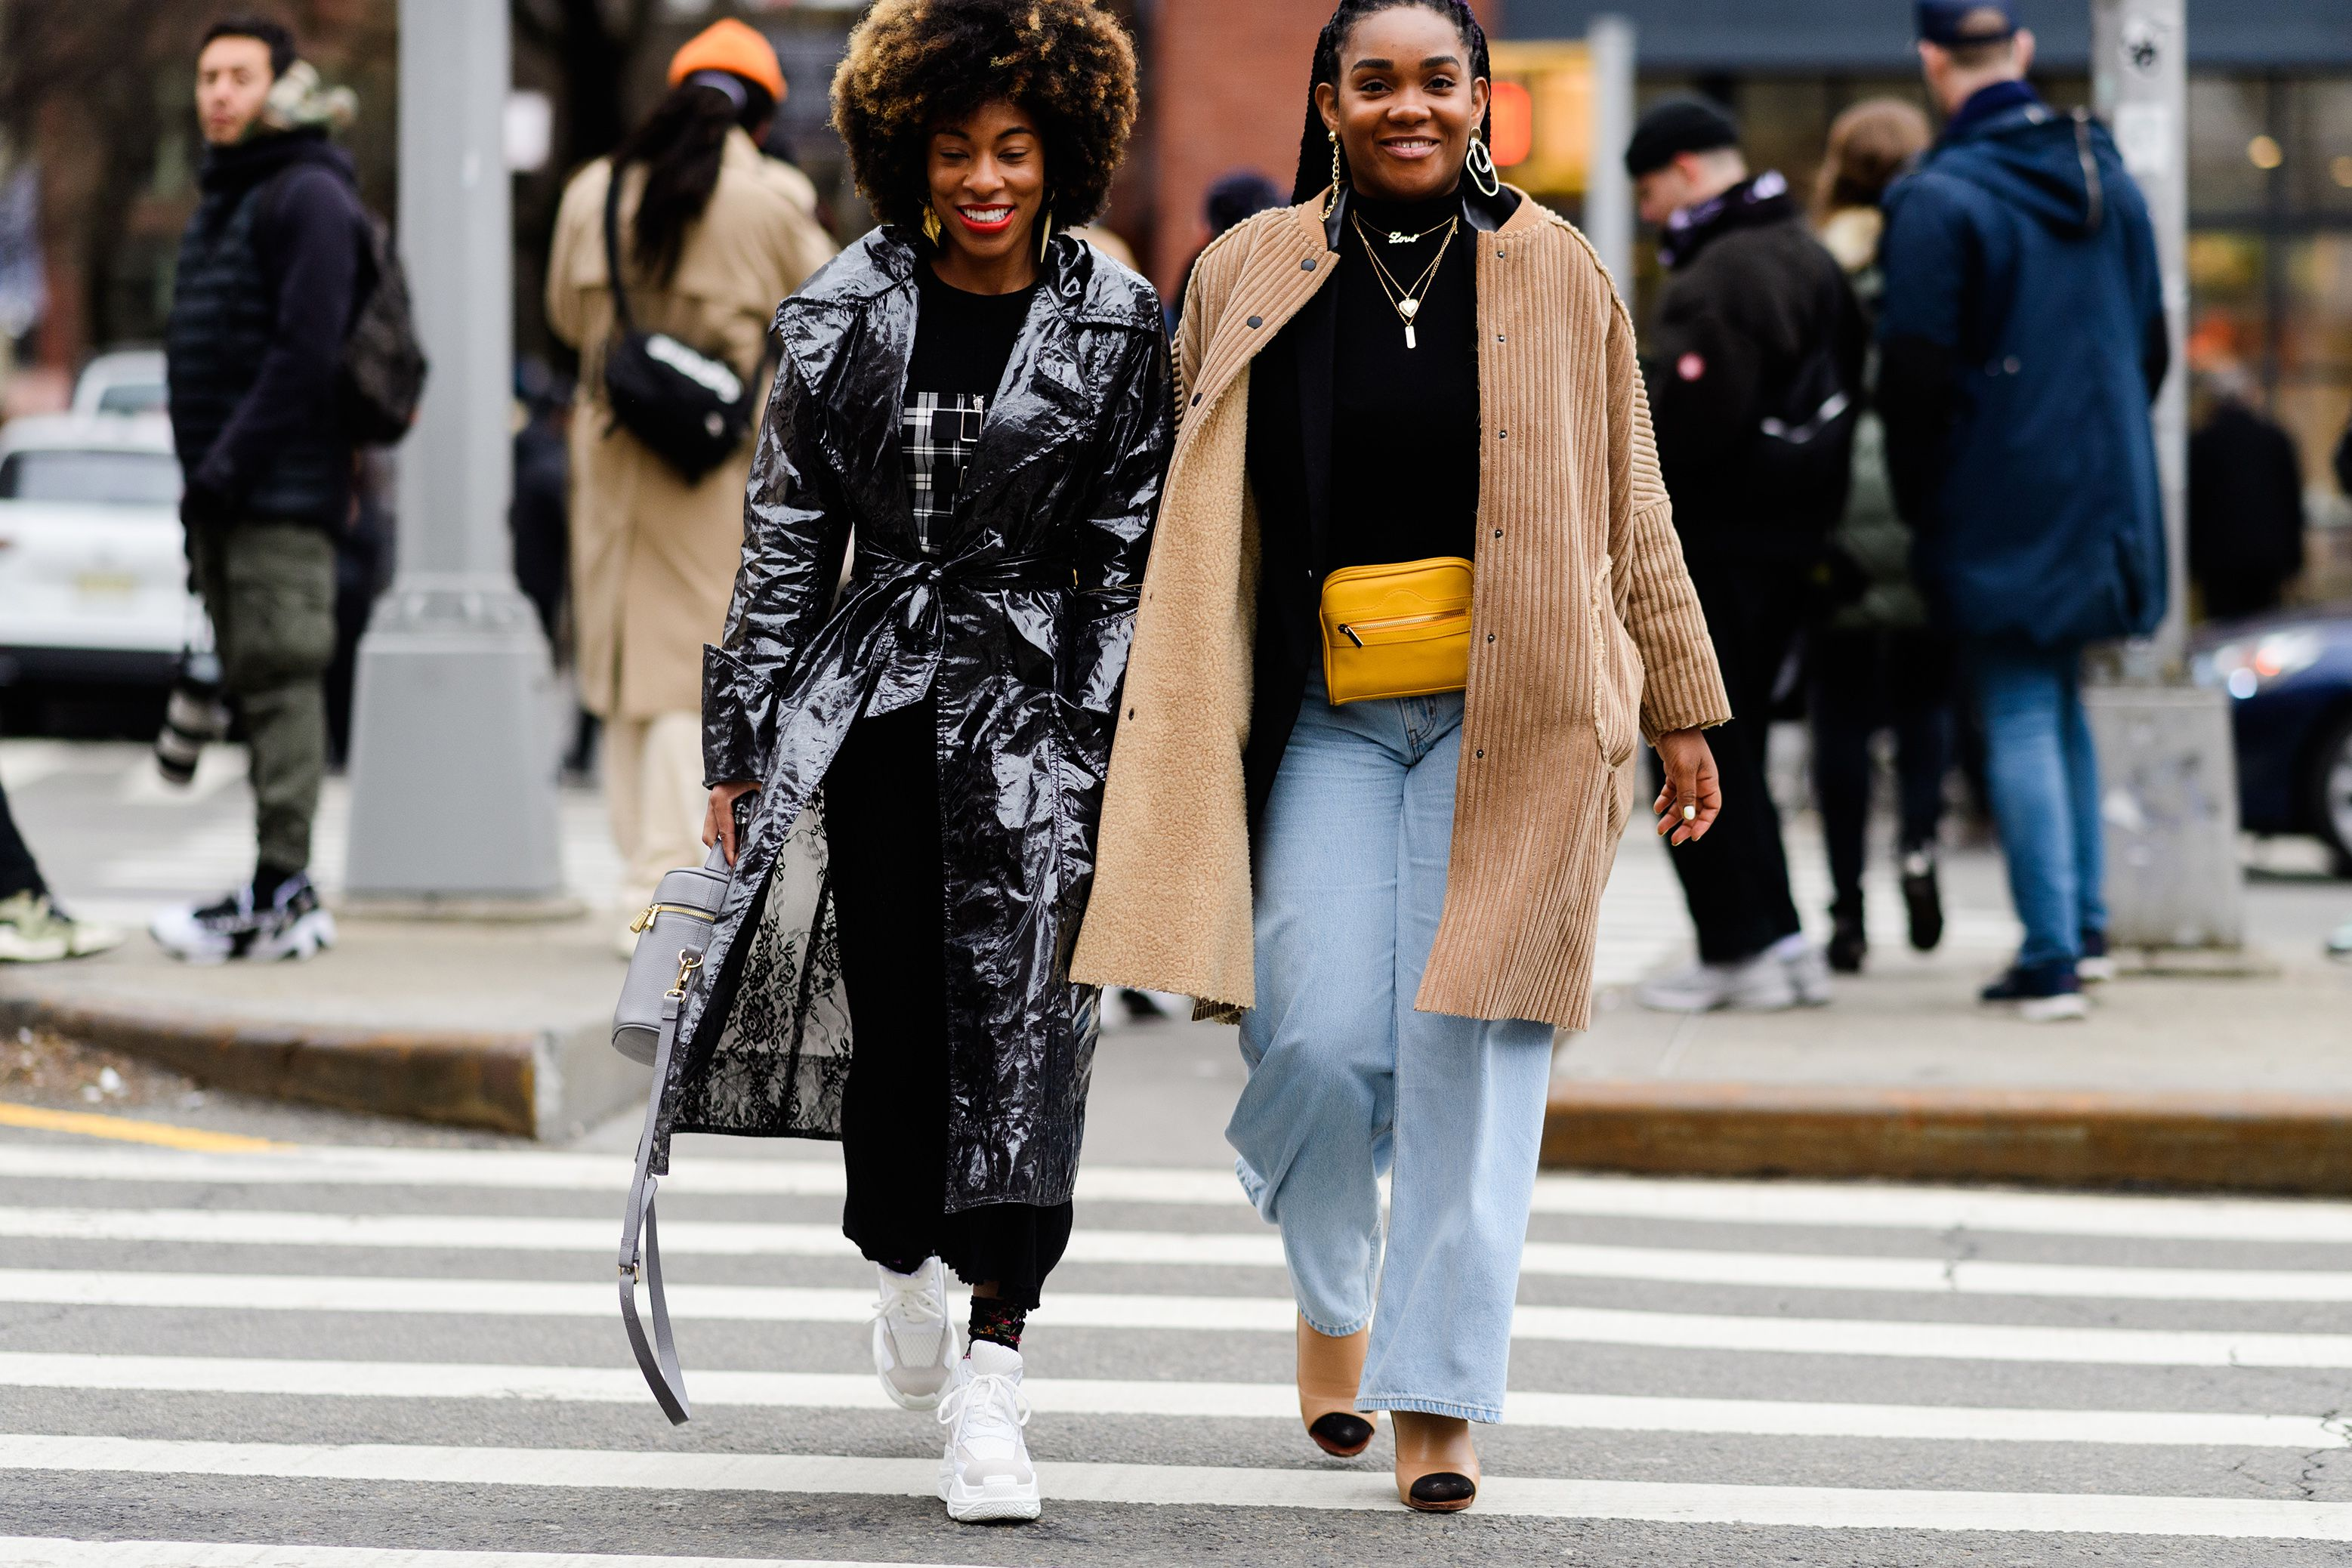 STREET STYLE LESSONS FROM THE A/W 2019 SHOWS!